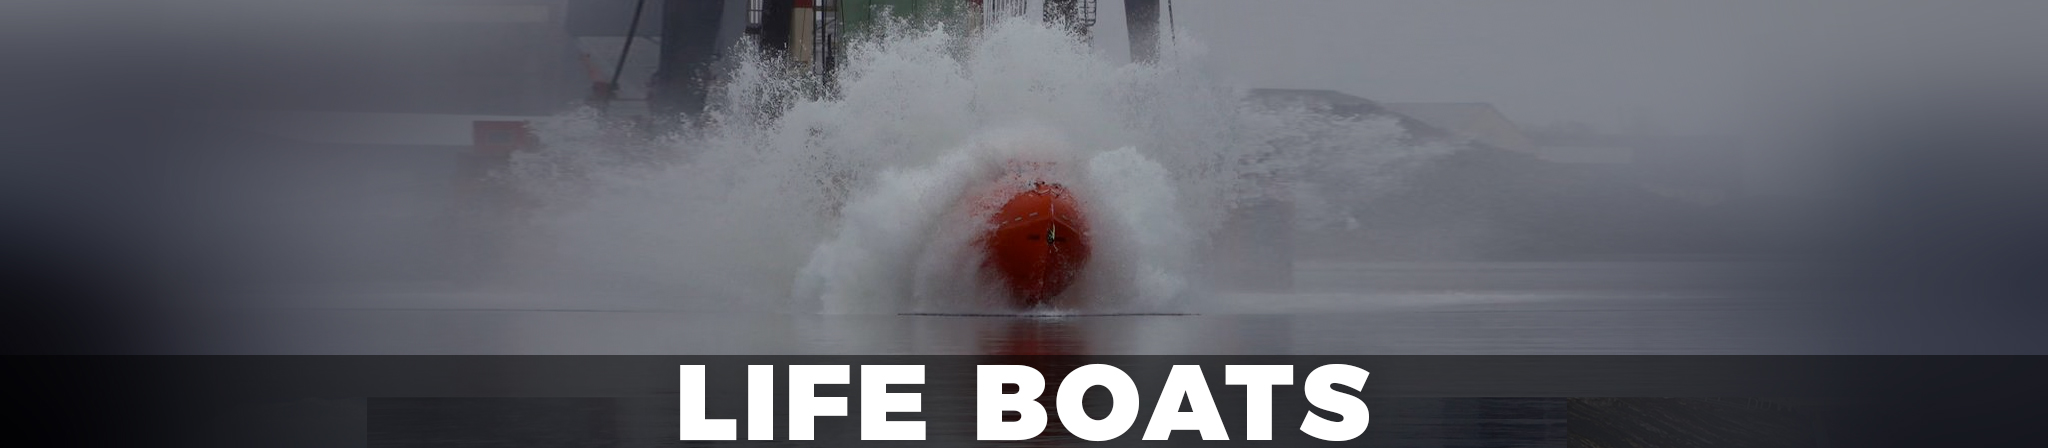 Lifeboat Inspection and services